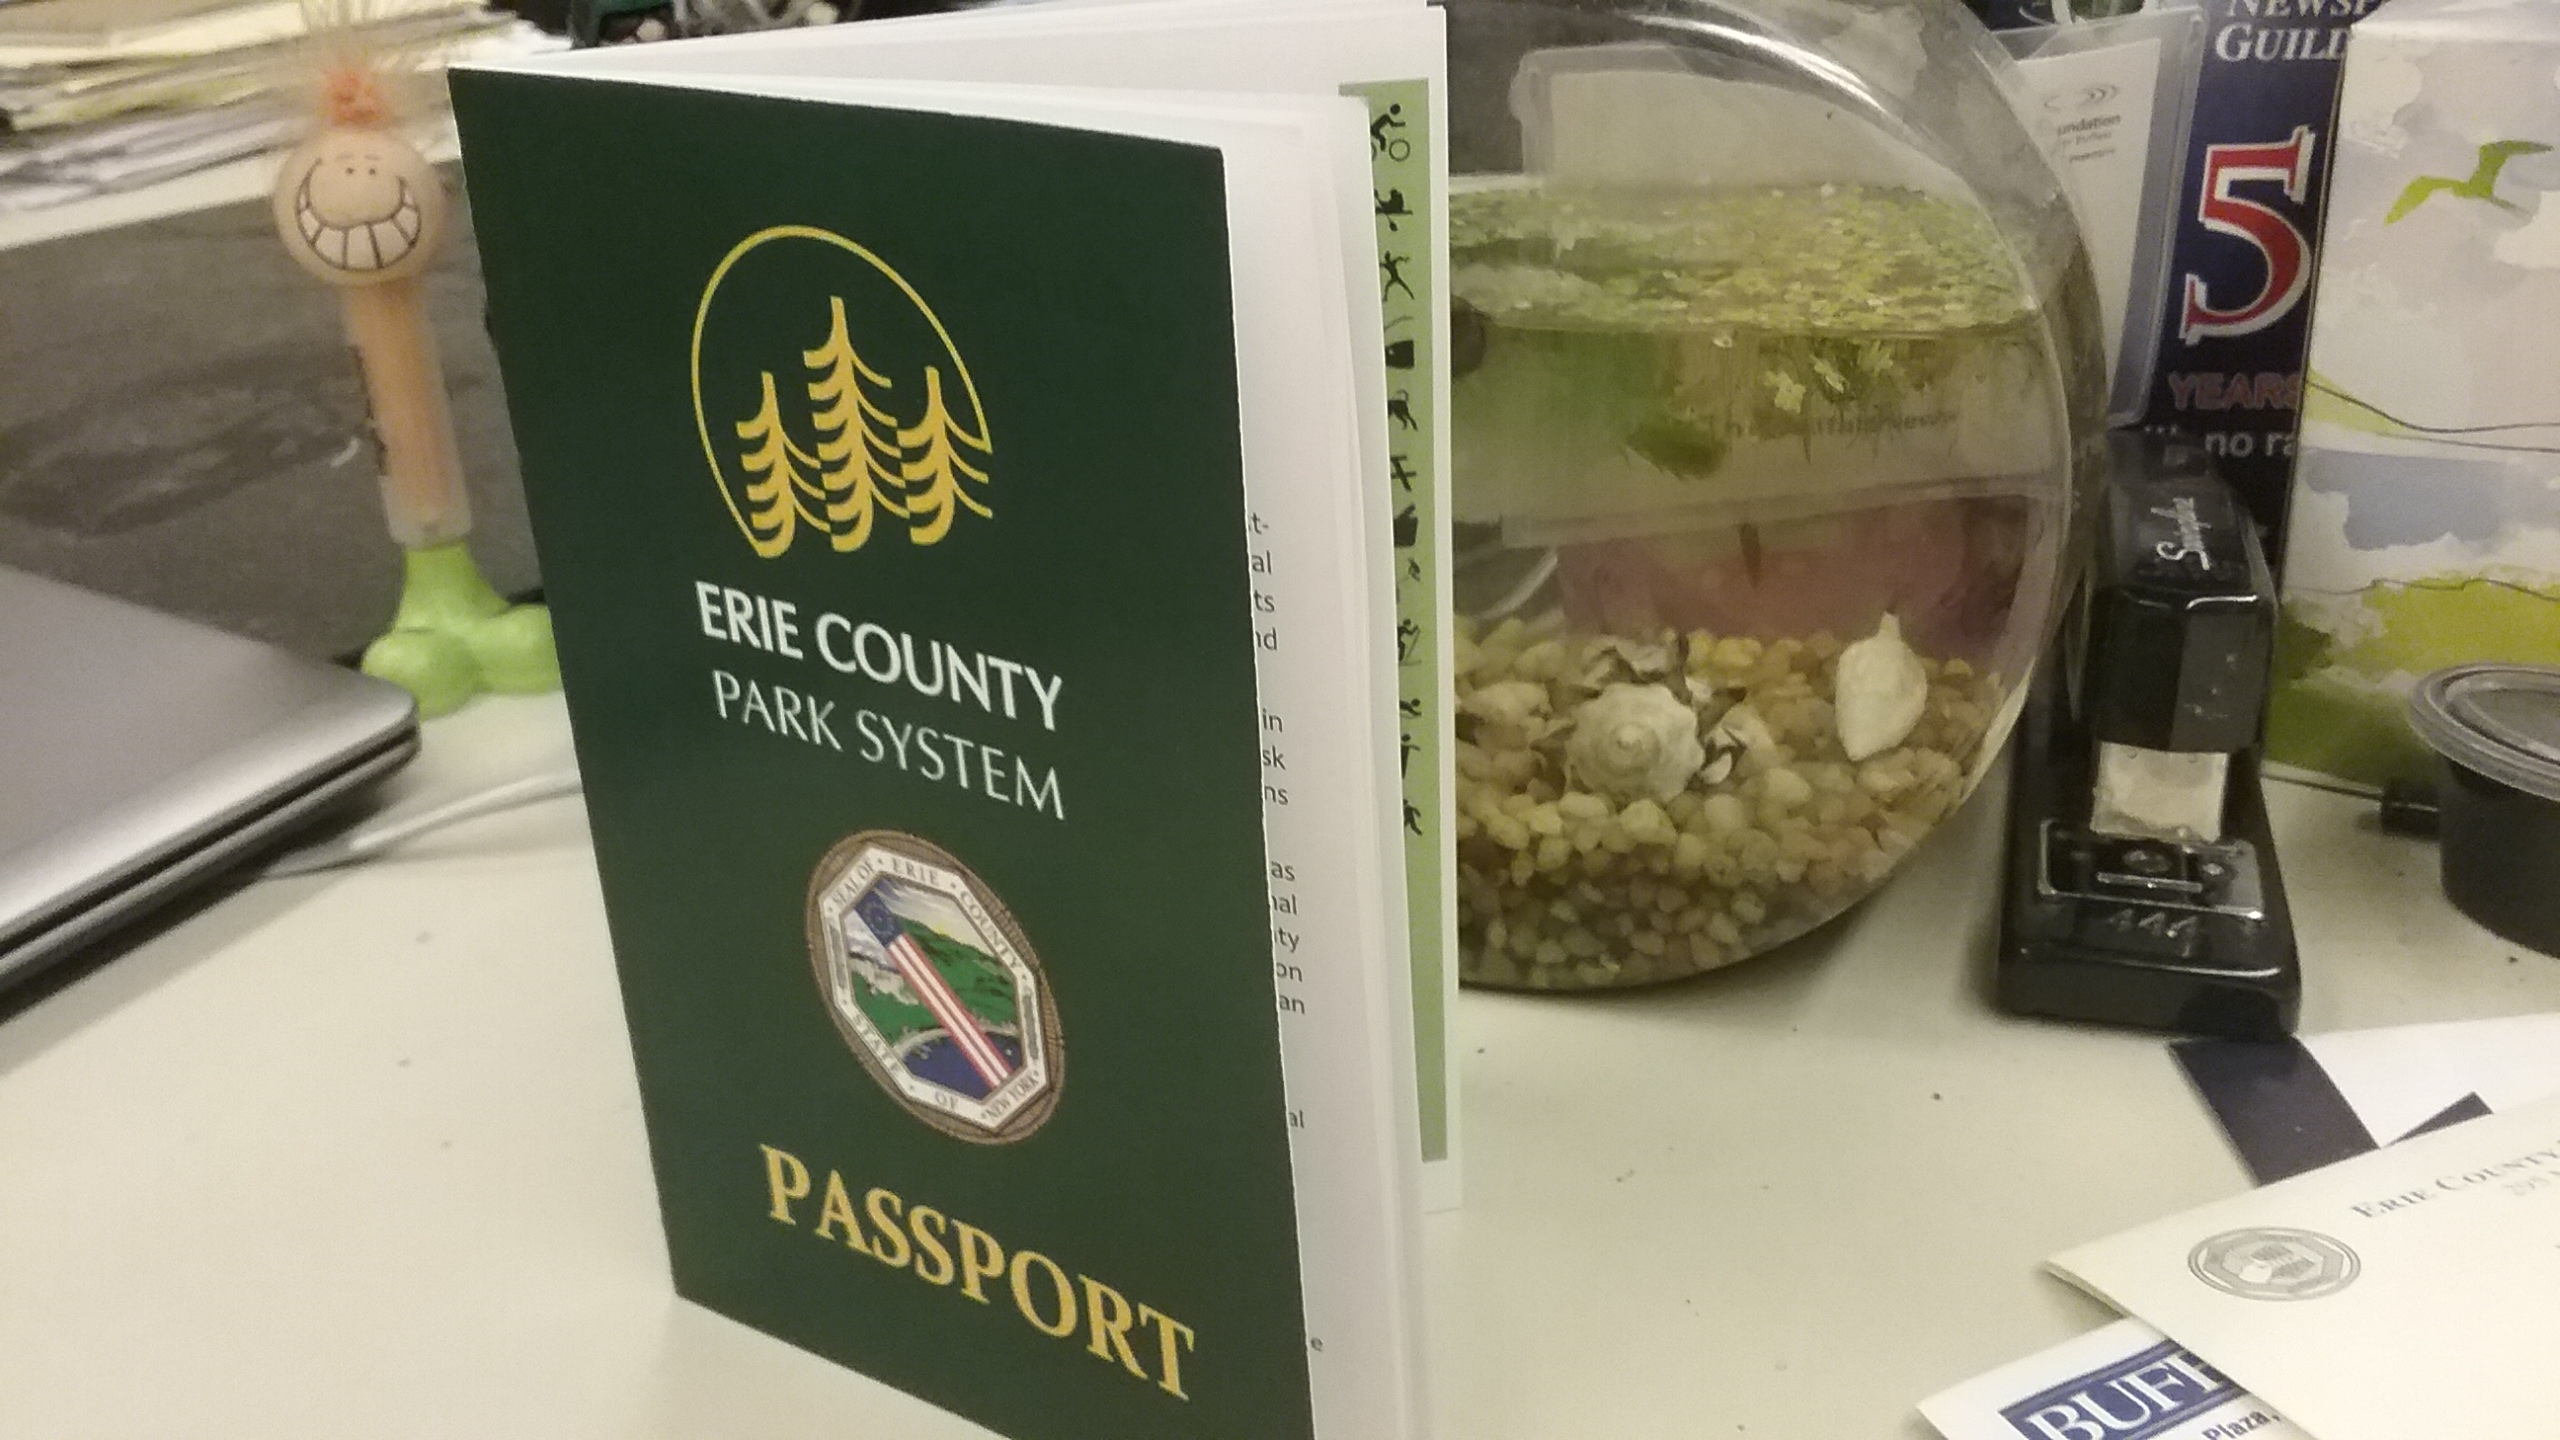 County Executive Poloncarz announced a new Junior Ranger program and county park passports at his 2017 State of the County address.